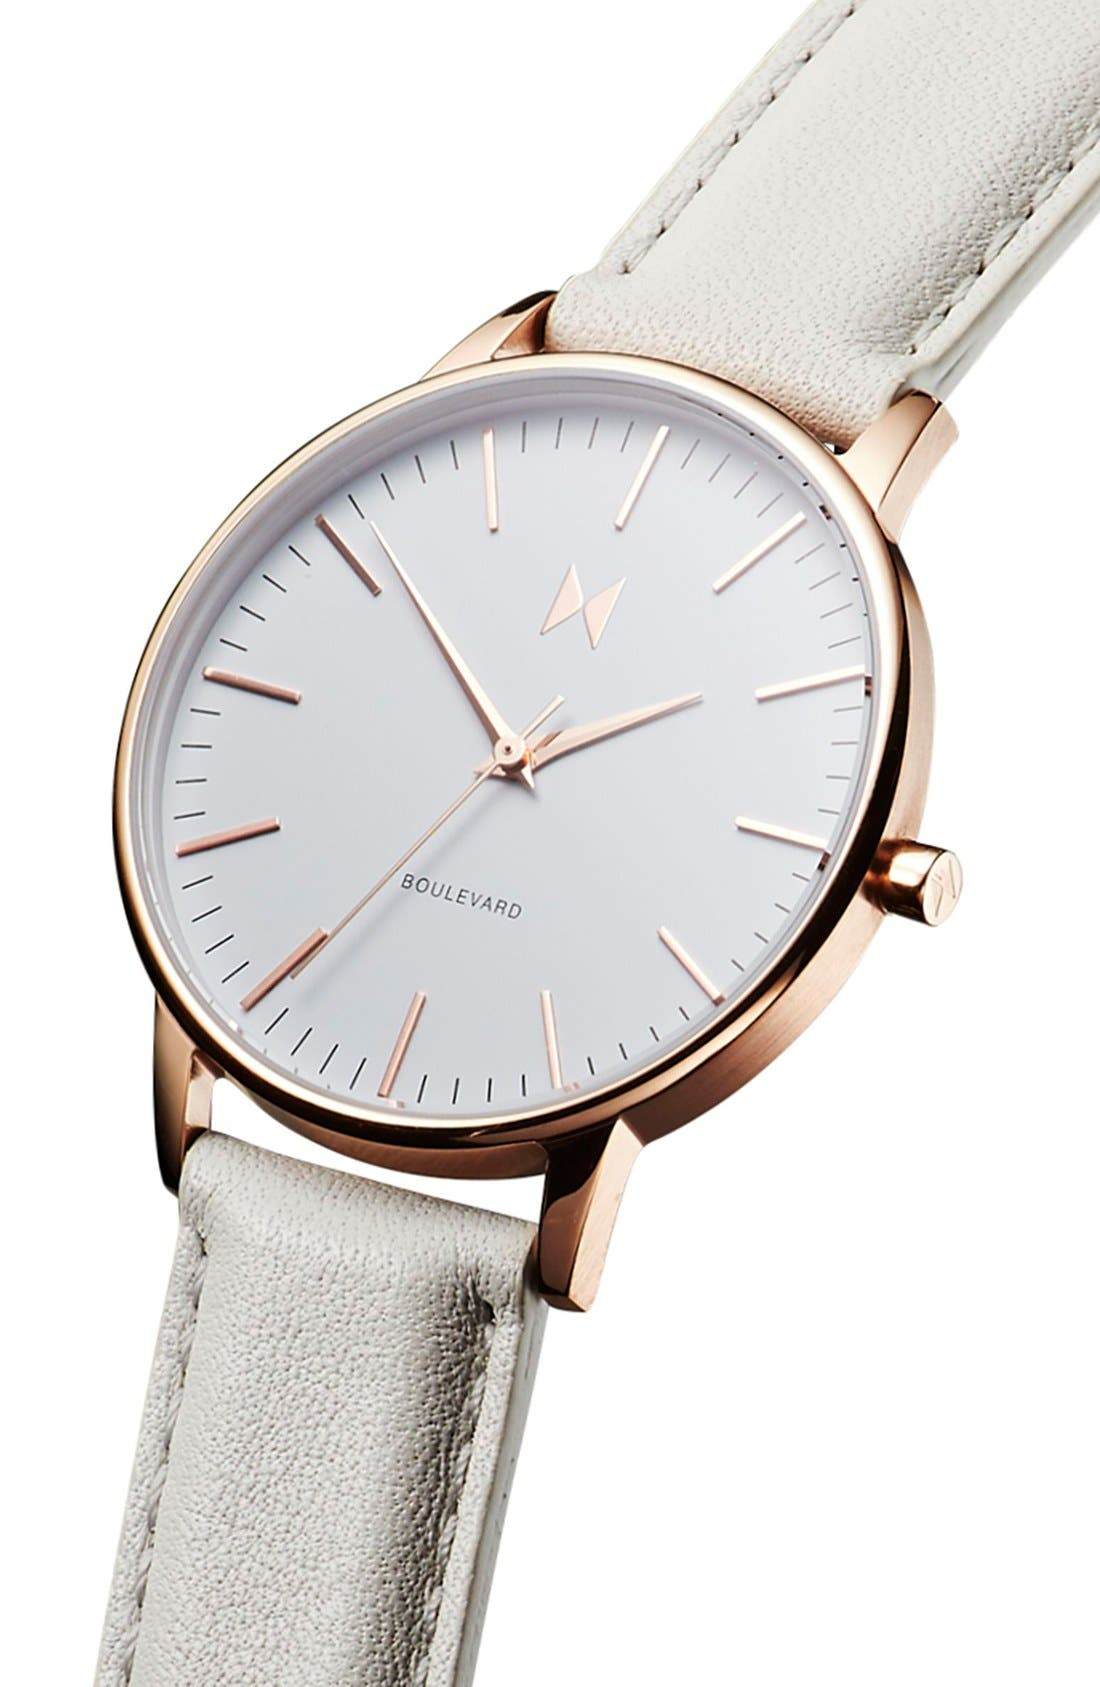 MVMT, Boulevard Leather Strap Watch, 38mm, Alternate thumbnail 3, color, GREY/ WHITE/ ROSE GOLD